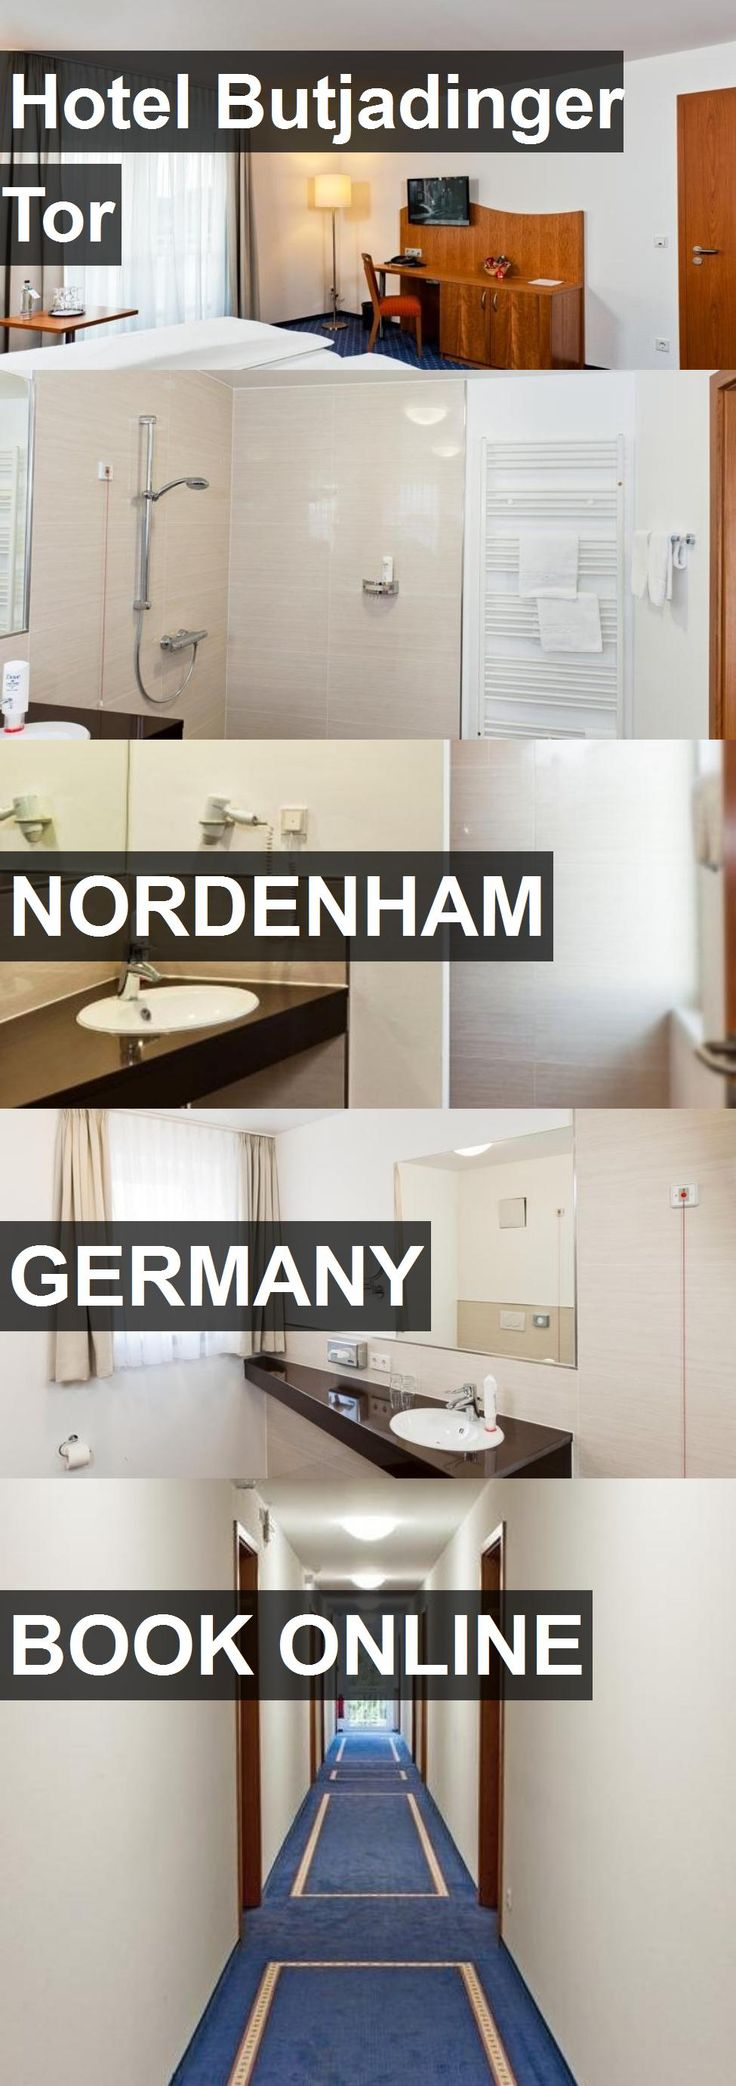 Hotel Hotel Butjadinger Tor in Nordenham, Germany. For more information, photos, reviews and best prices please follow the link. #Germany #Nordenham #HotelButjadingerTor #hotel #travel #vacation